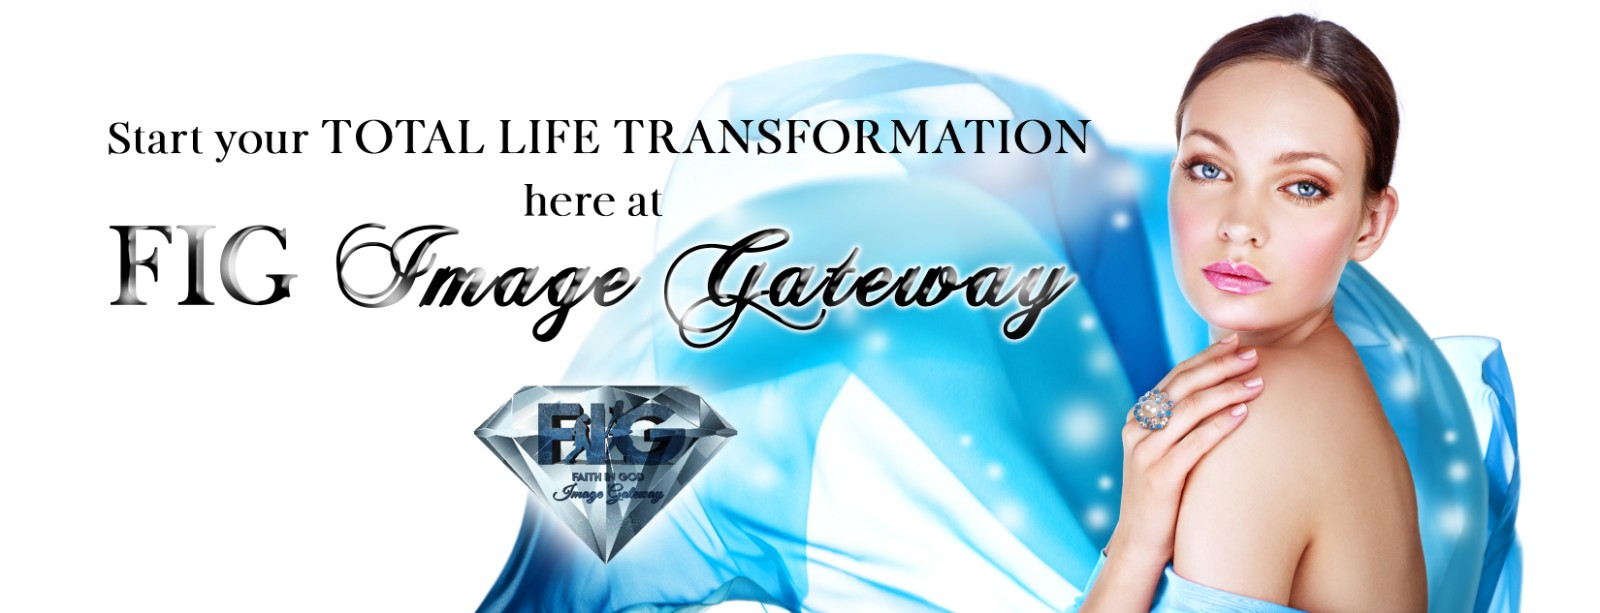 F.I.G. Image Gateway Takes Off to a Great Start!